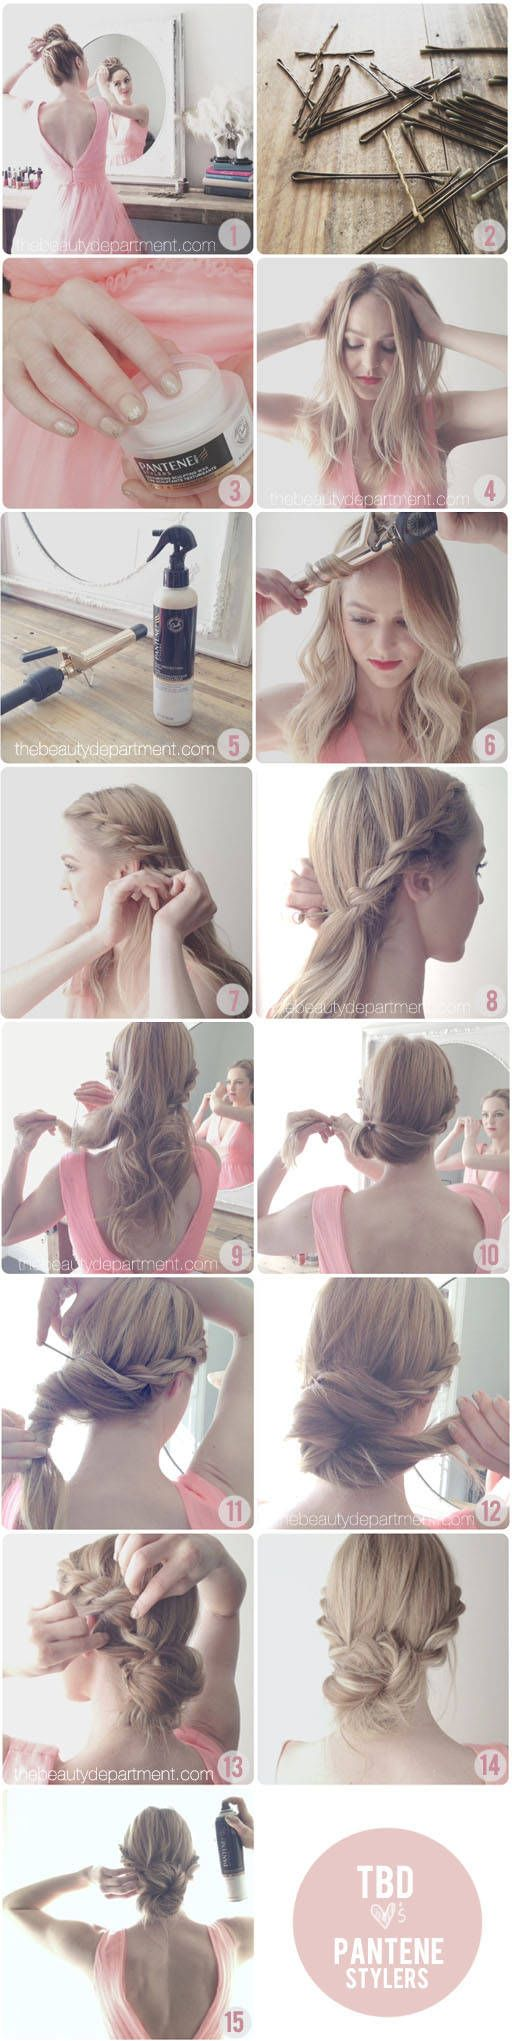 Rope braid chignon | TheBeautyDepartment